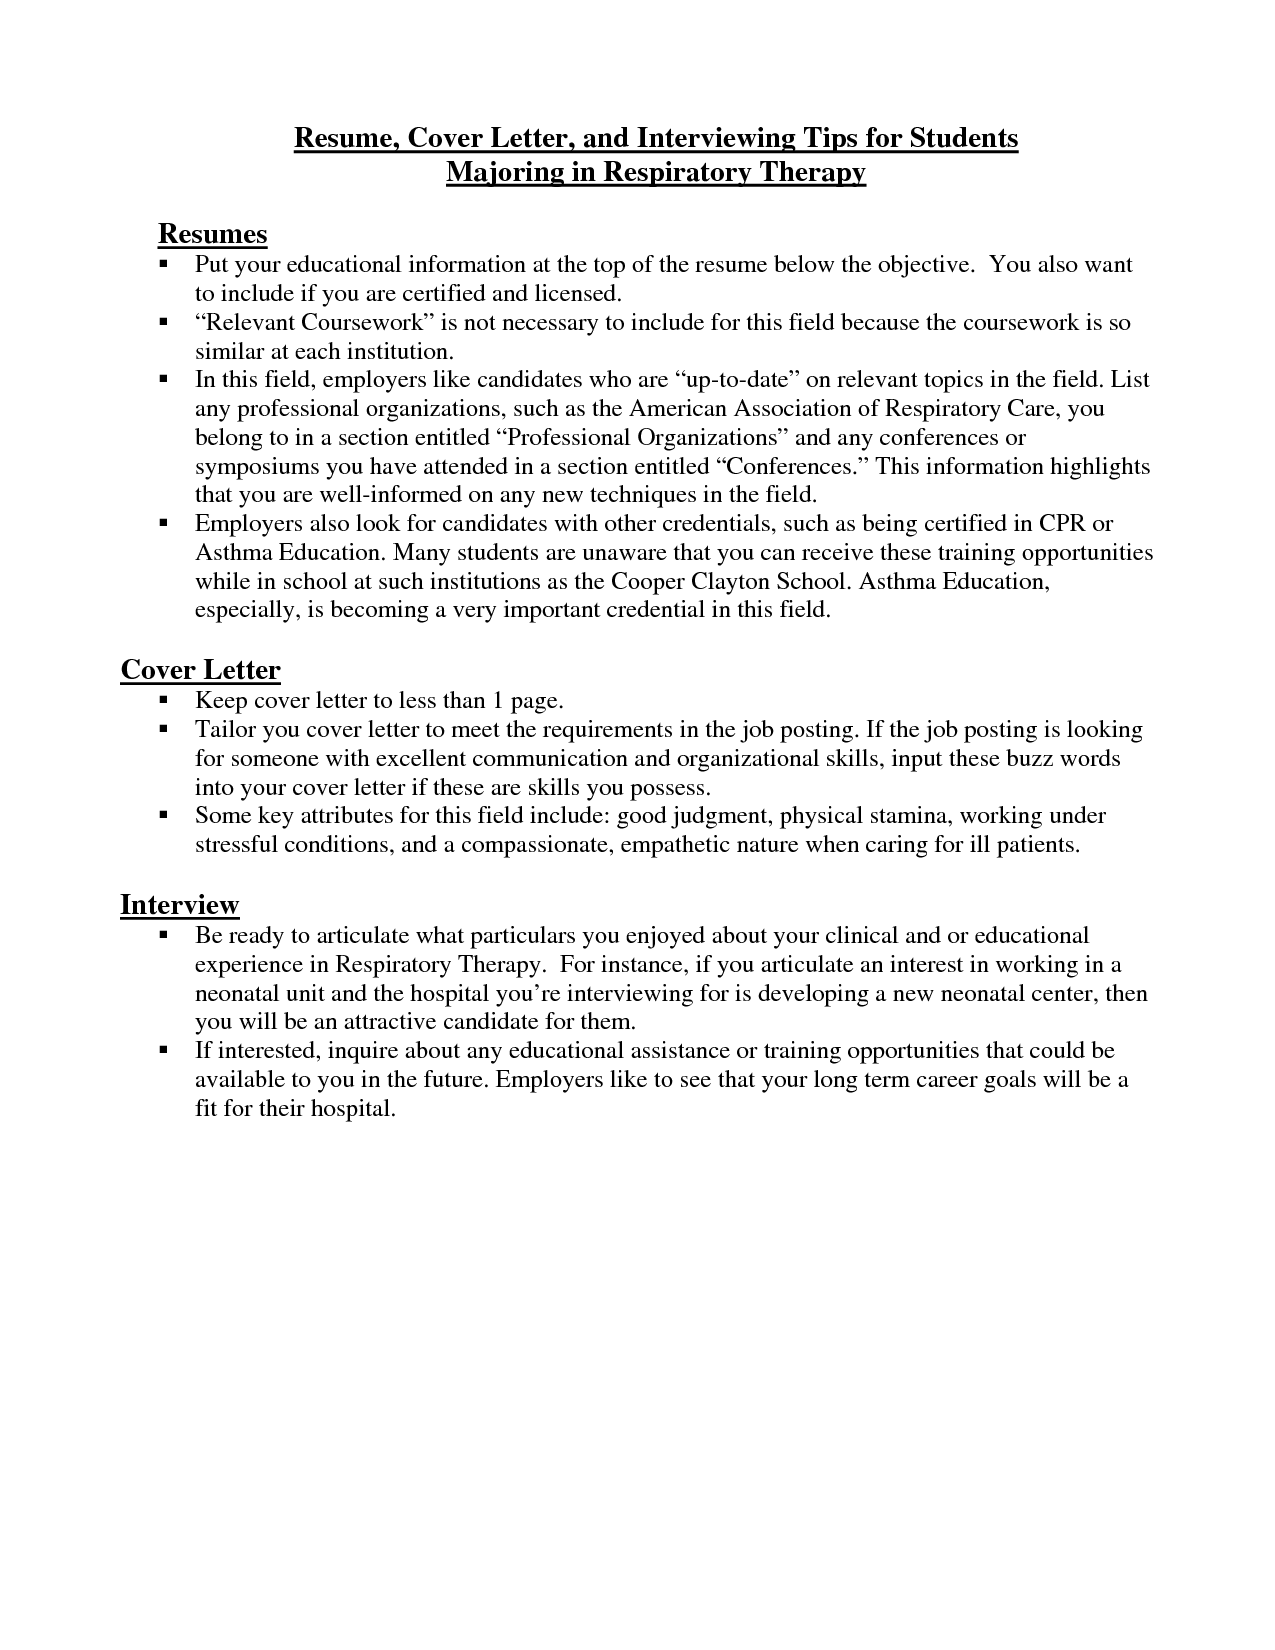 Respiratory Therapist Cover Letter Resume Cover Letter And